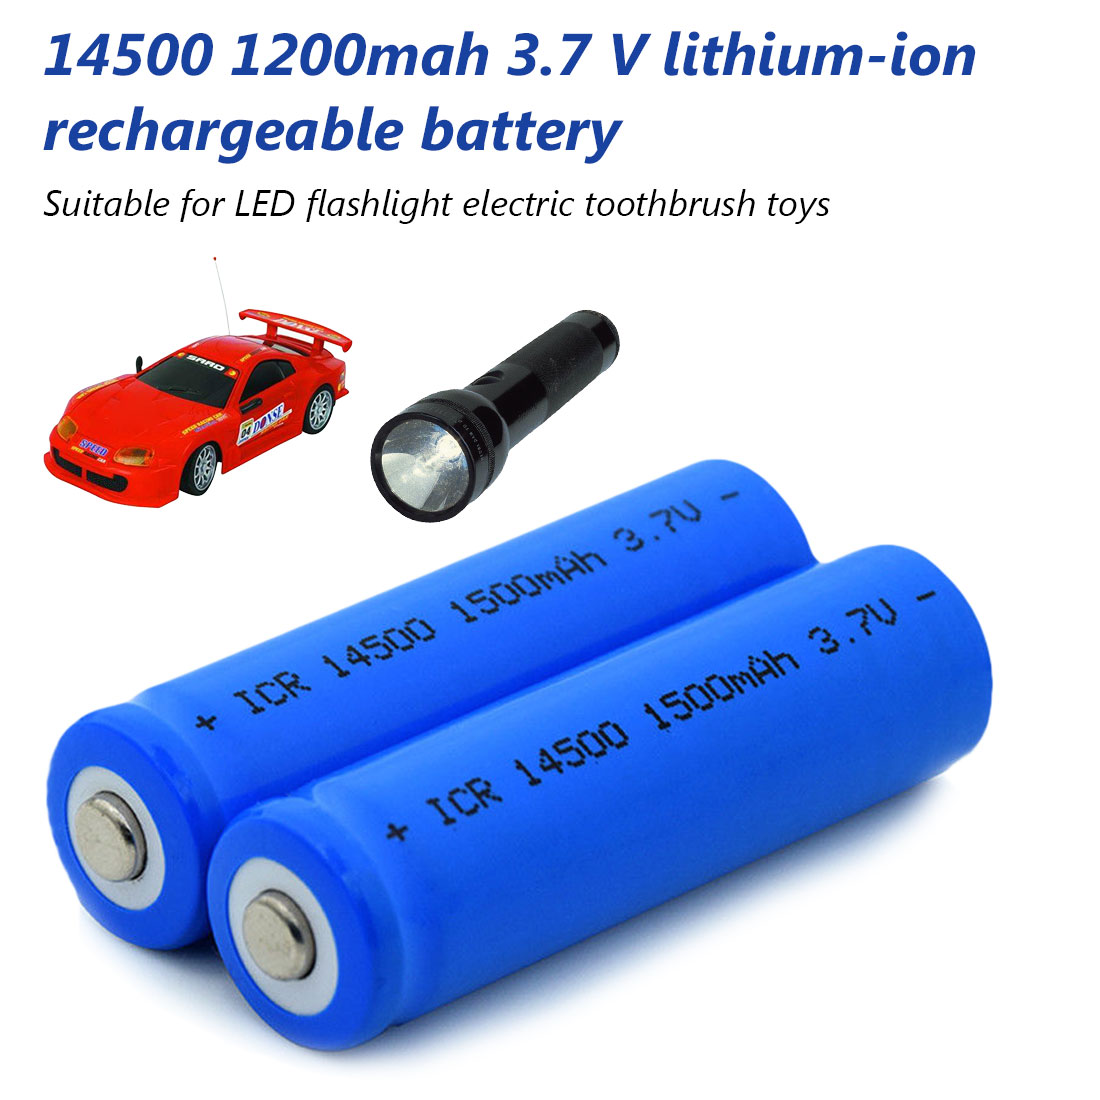 1/2 /4/8/12Pcs/Set AA <font><b>14500</b></font> 800mah 3.7 V Lithium <font><b>Ion</b></font> Rechargeable <font><b>Li</b></font>-<font><b>ion</b></font> Battery for Led Flashlight Headlamps image